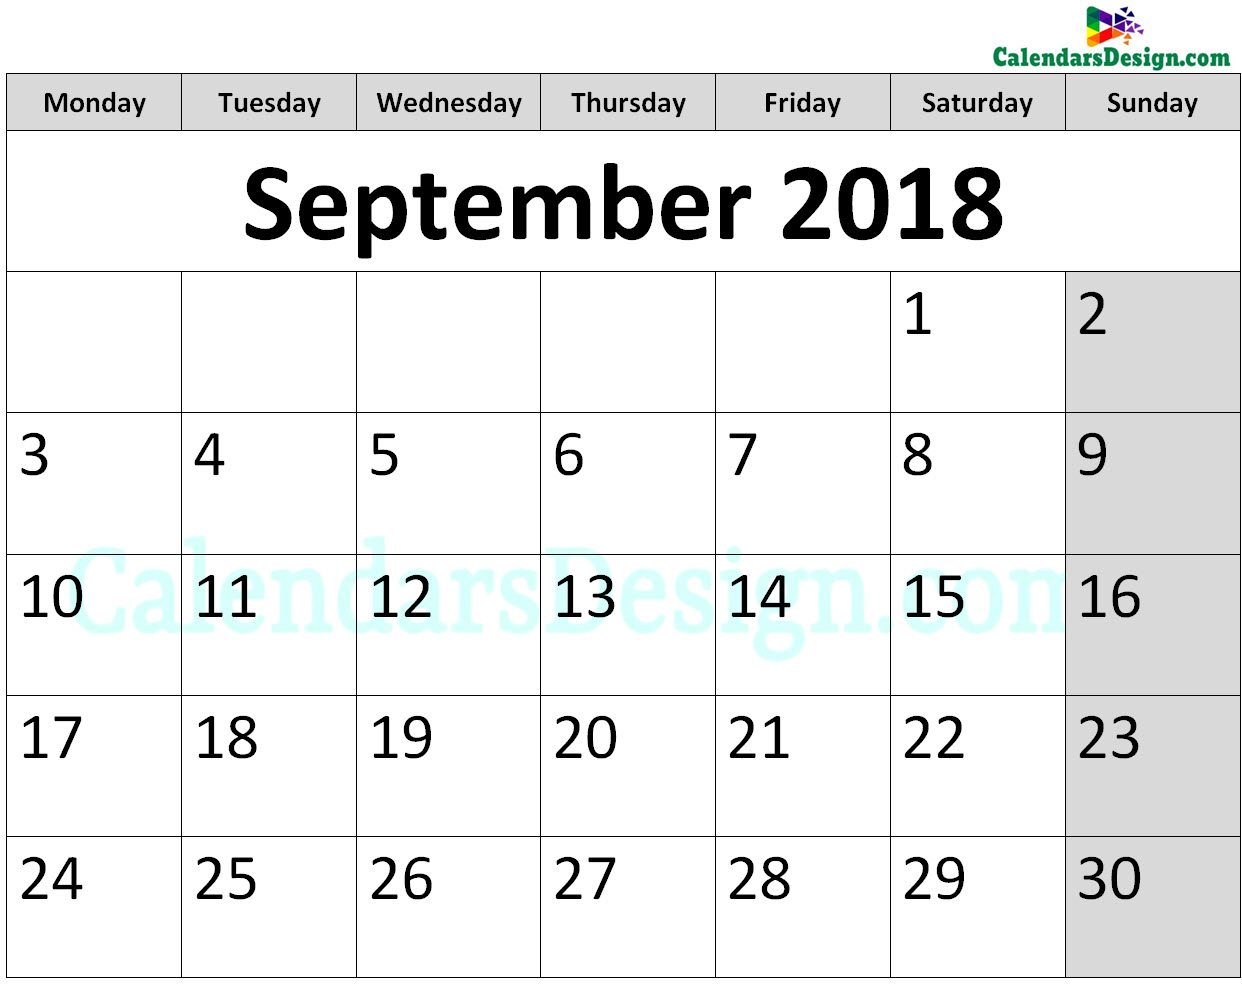 Printable Calendar for September 2018 Page